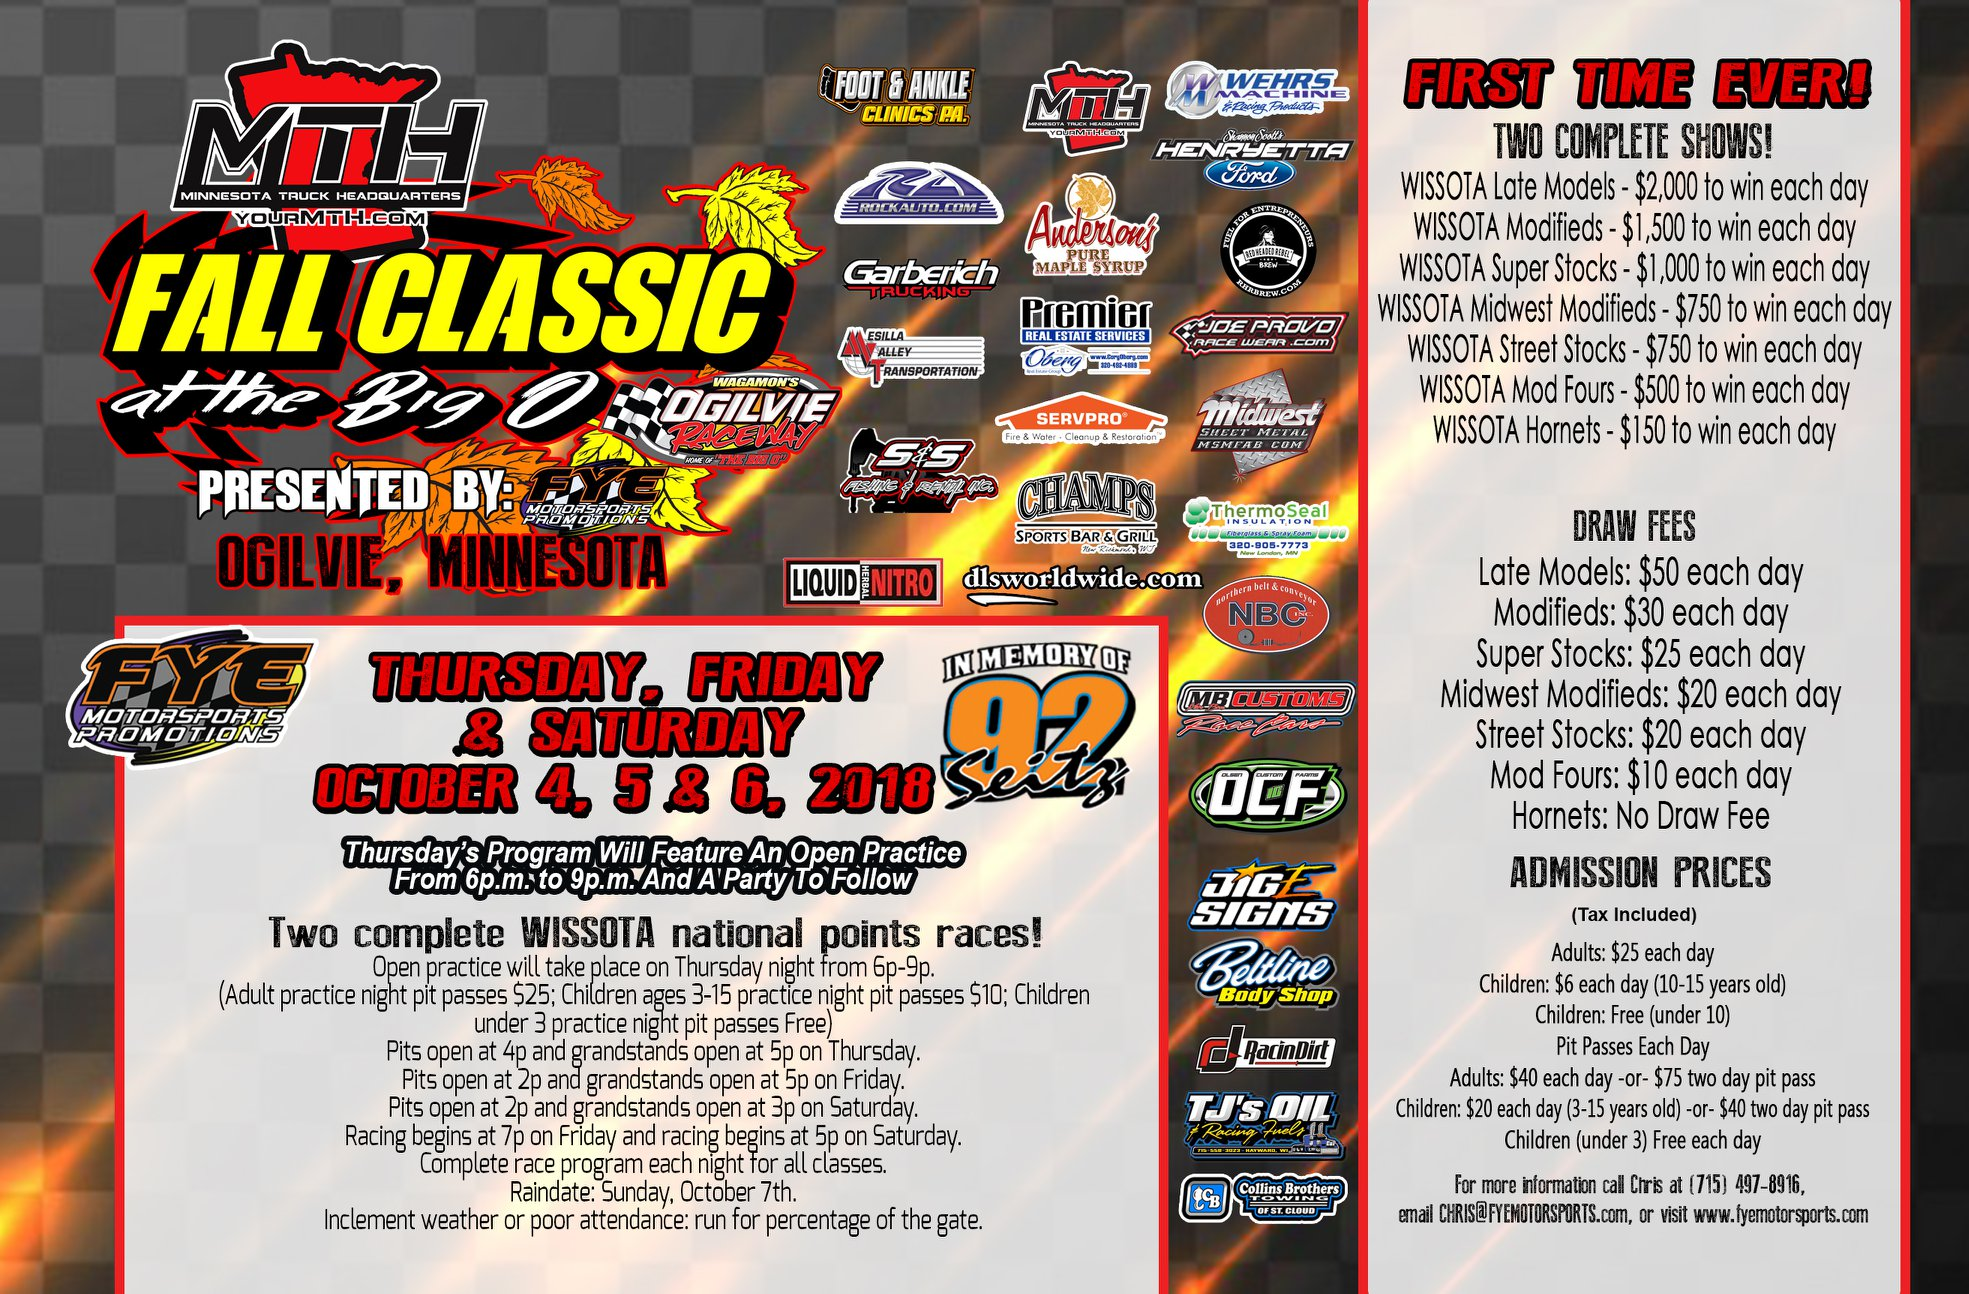 MTH Fall Classic at the Big O – October 4th – 6th